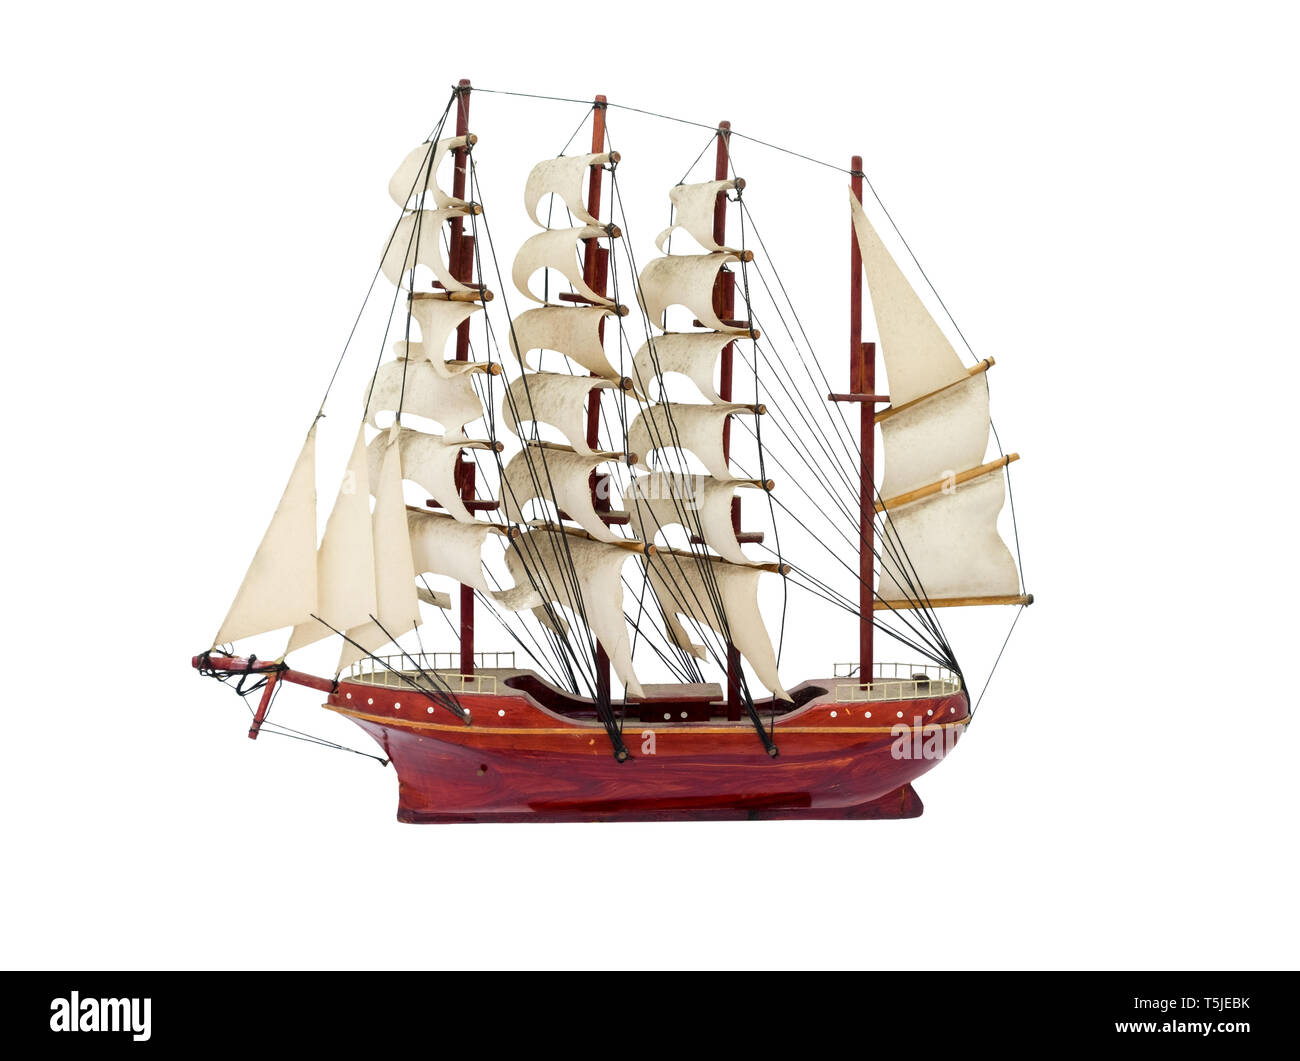 Barque ship gift craft model wooden,isolated on background - Stock Image